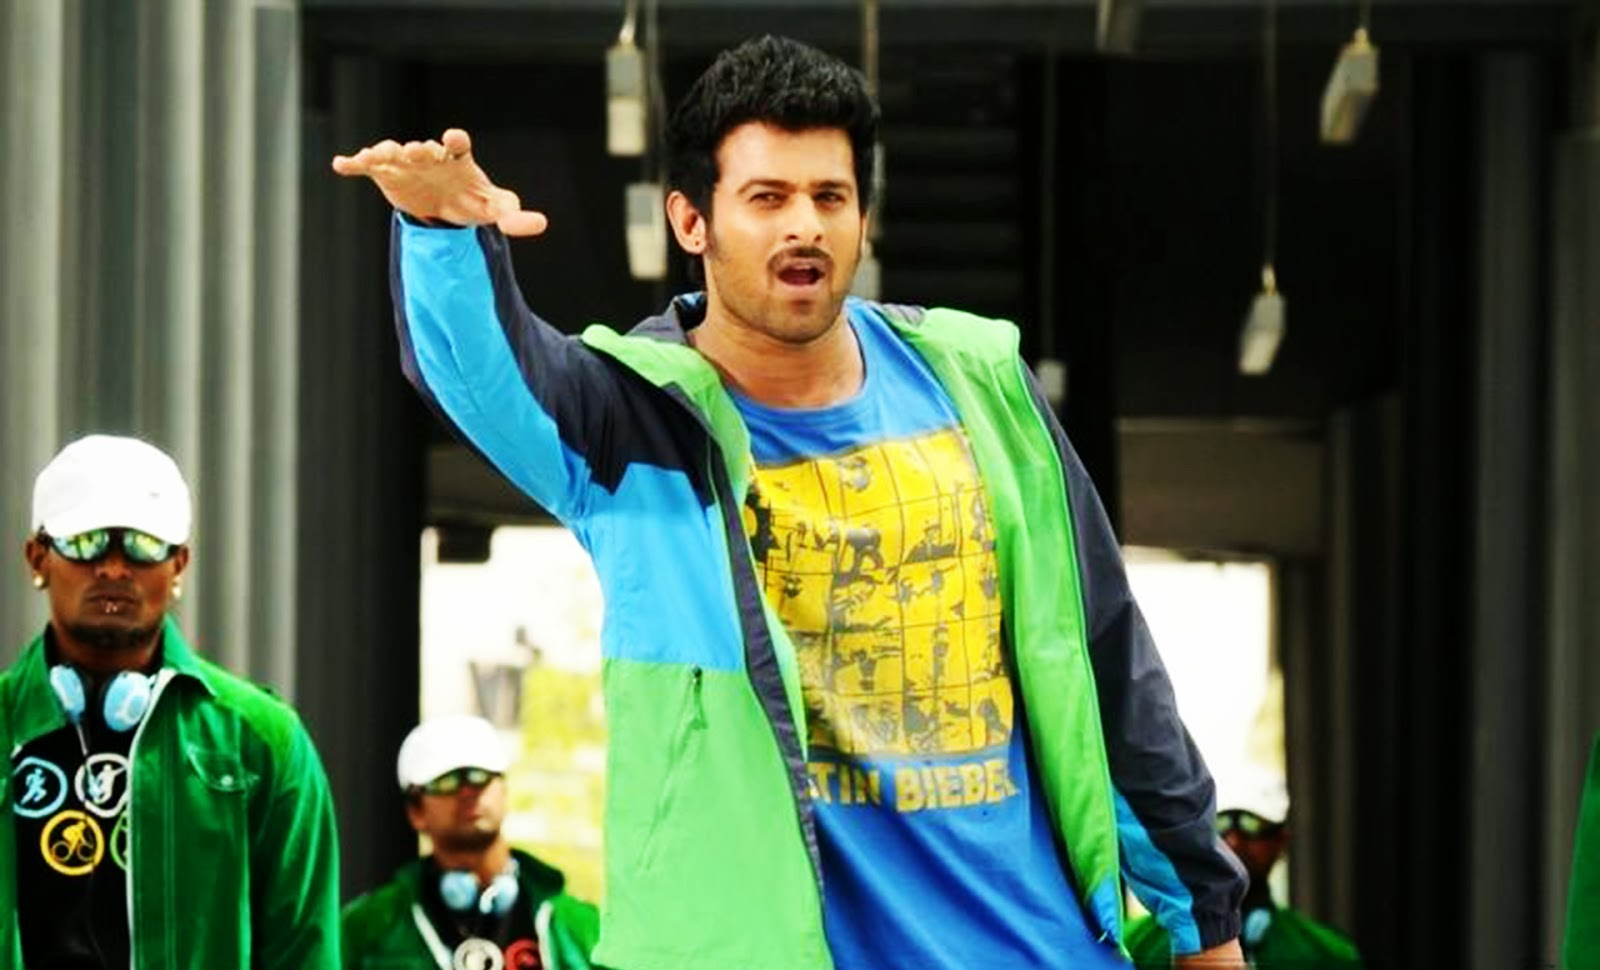 Prabhas Fans Forever: Rebel Unseen Hd Stills Without Watermarks